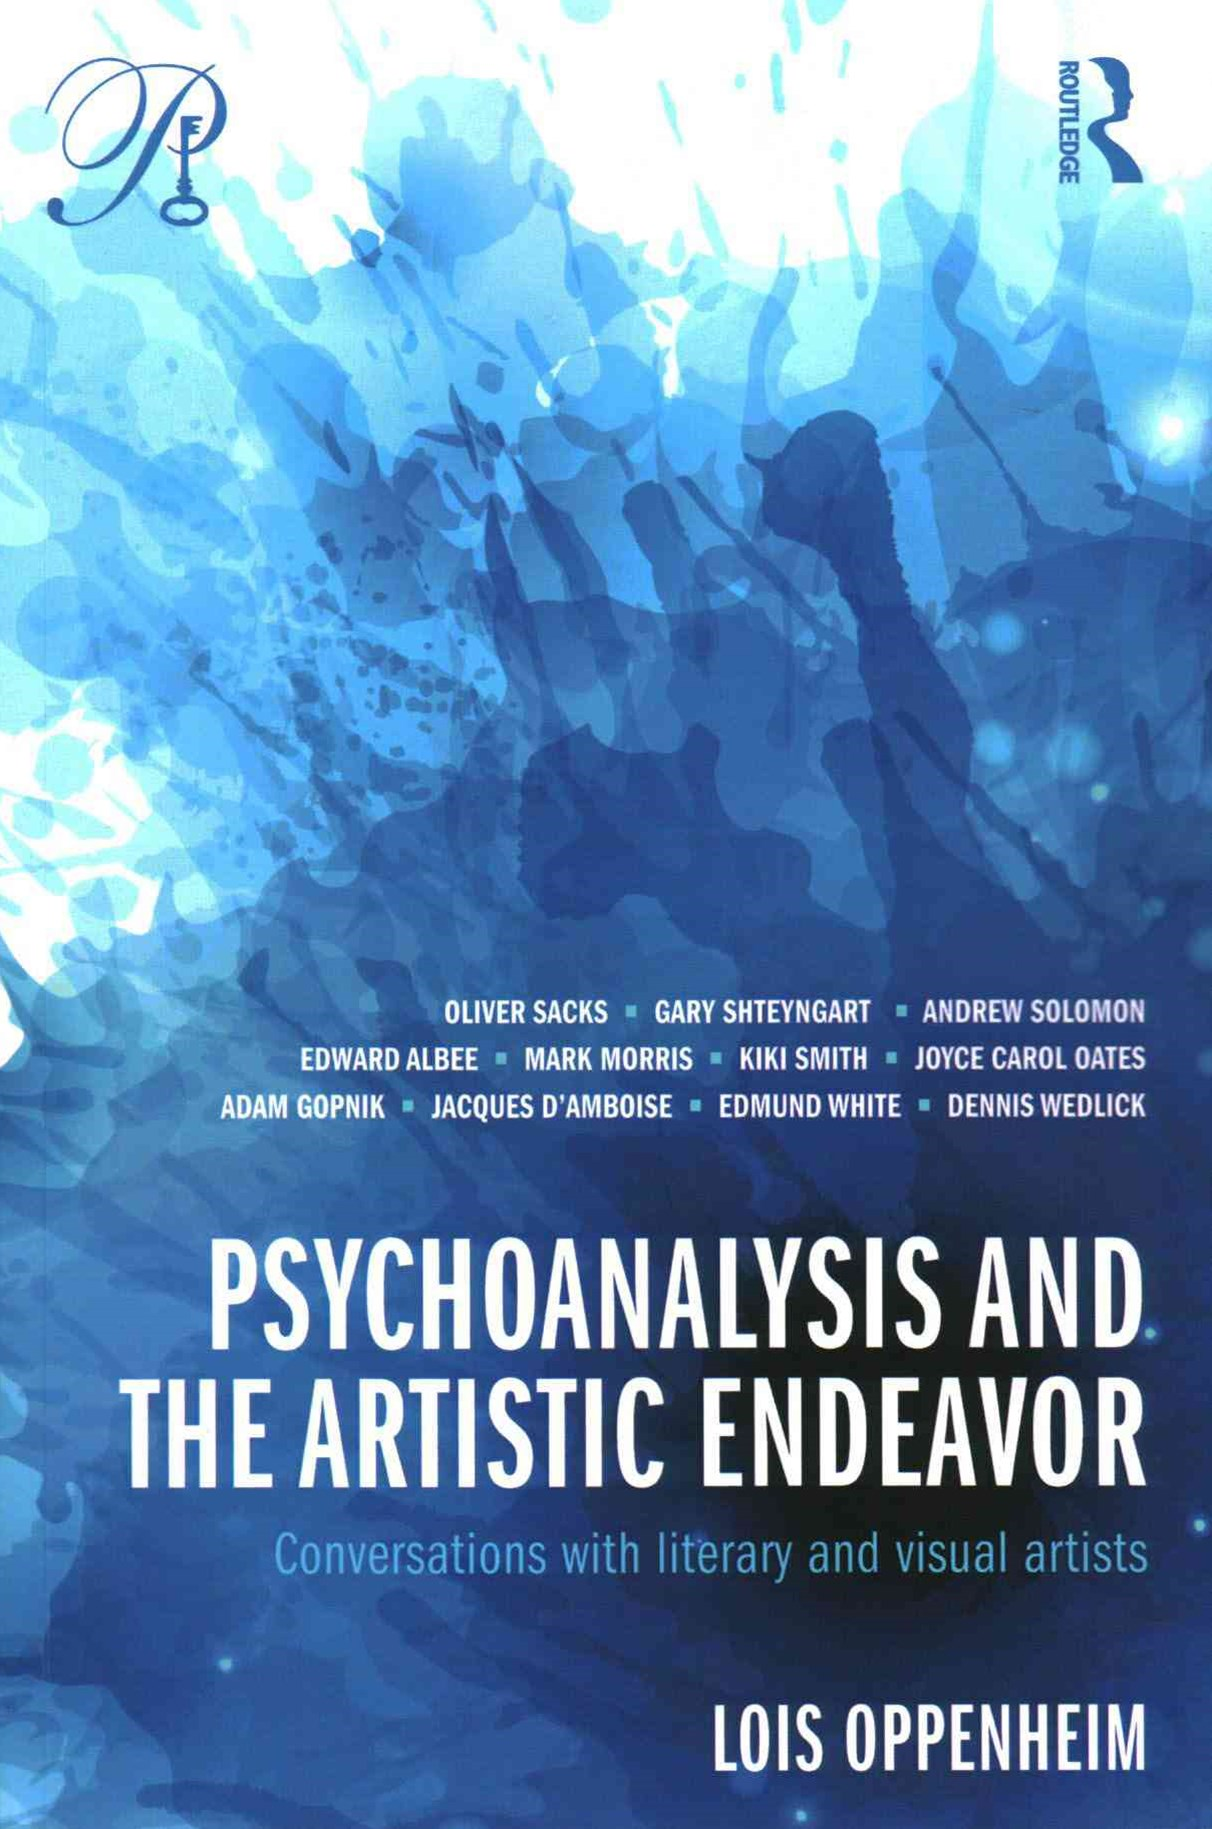 Psychoanalysis and the Artistic Endeavor